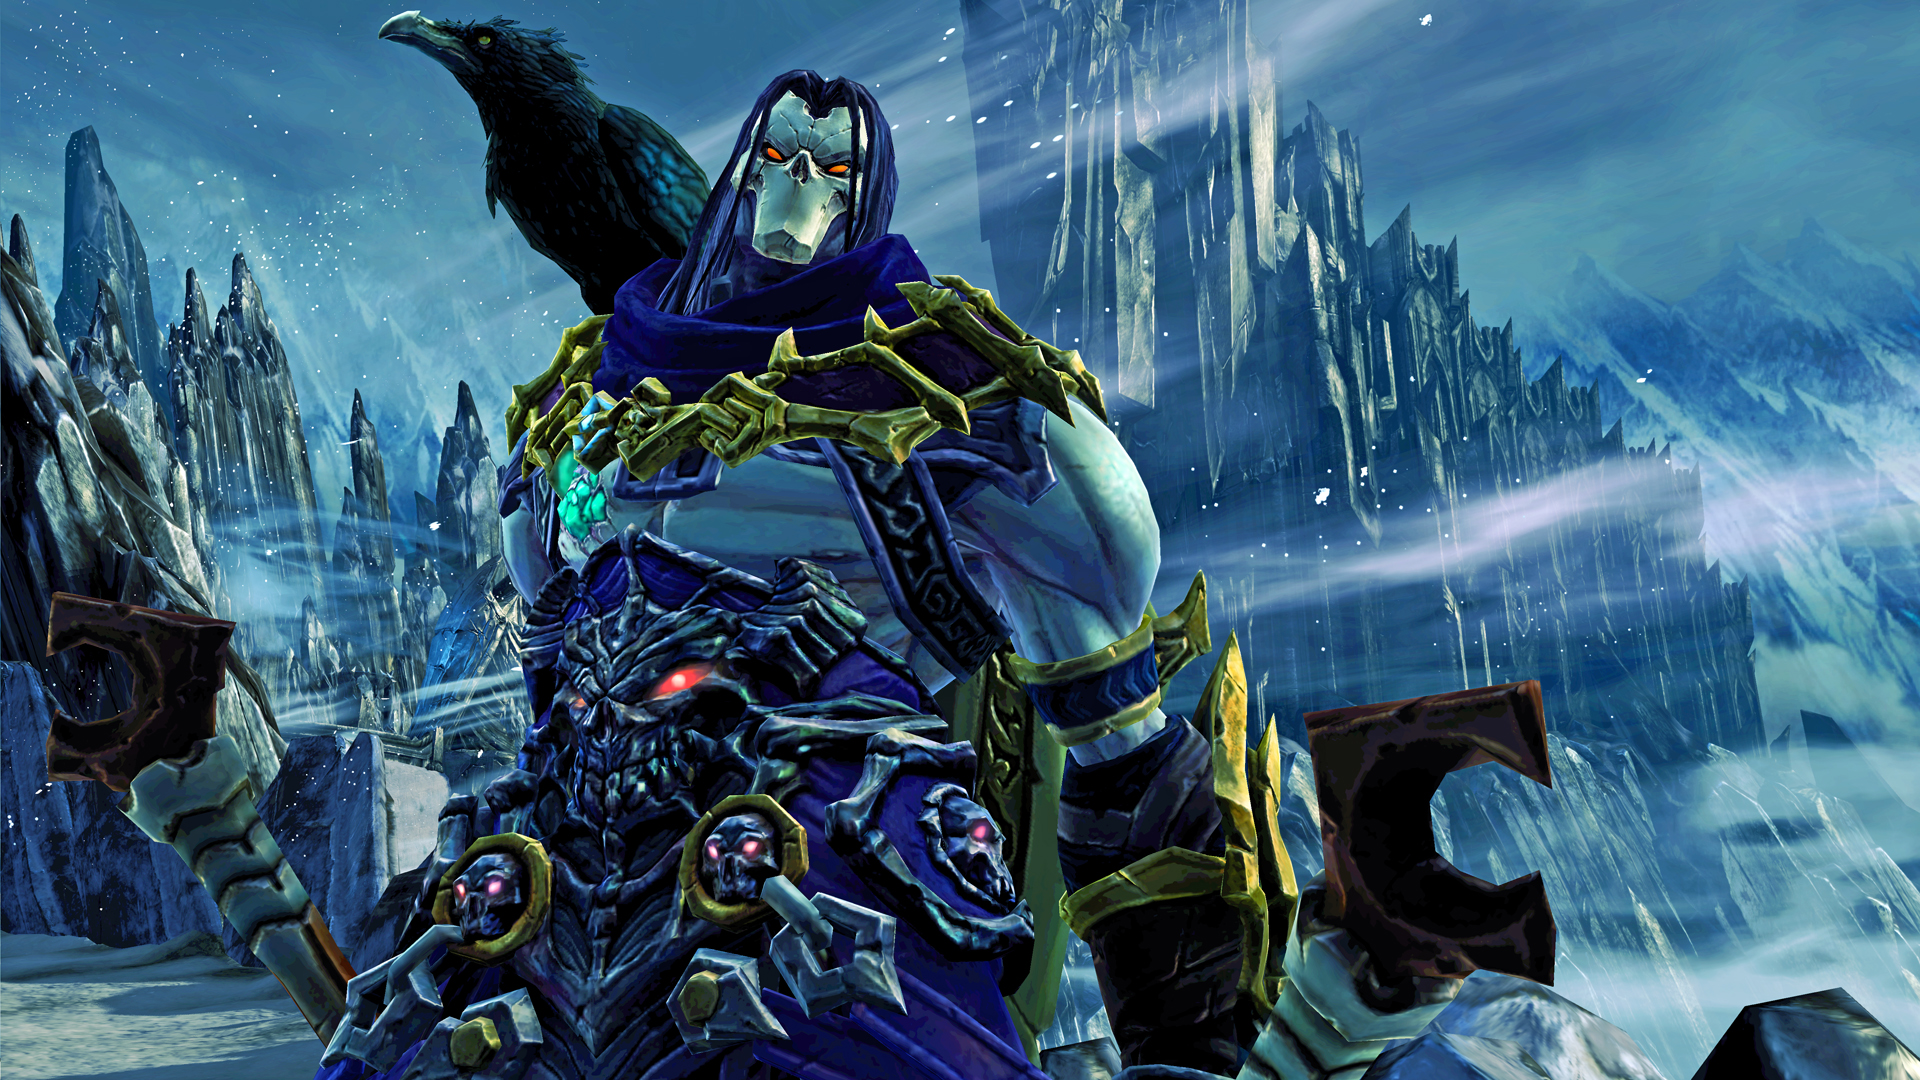 Play as Death in Darksiders II on your Android tablet via OnLive today